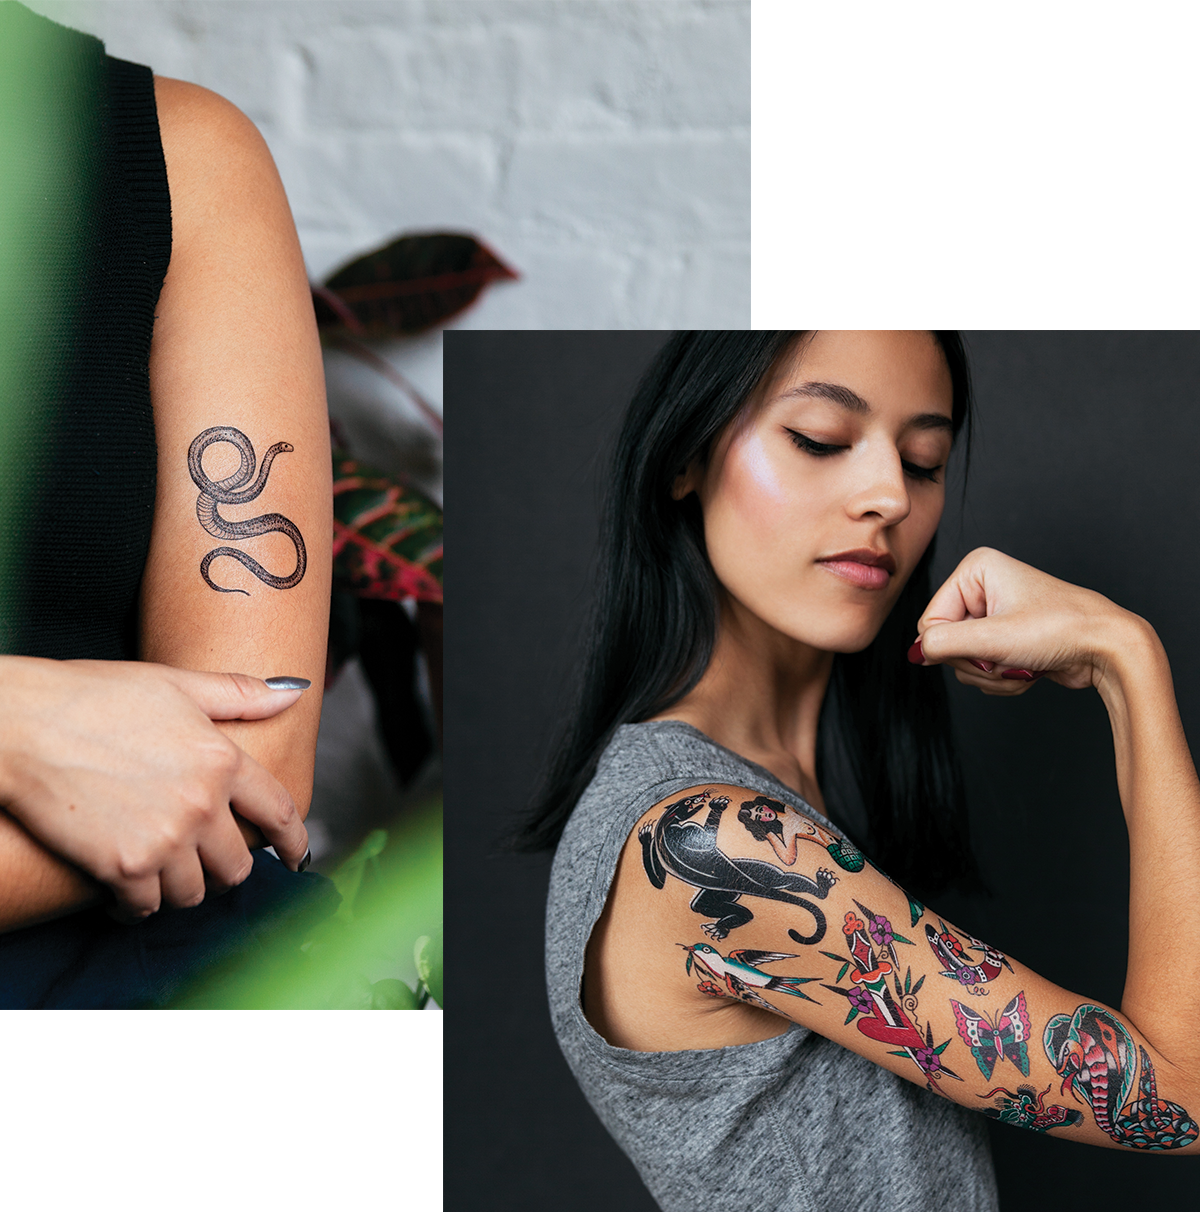 Realistic Tattly by real tattoo artists